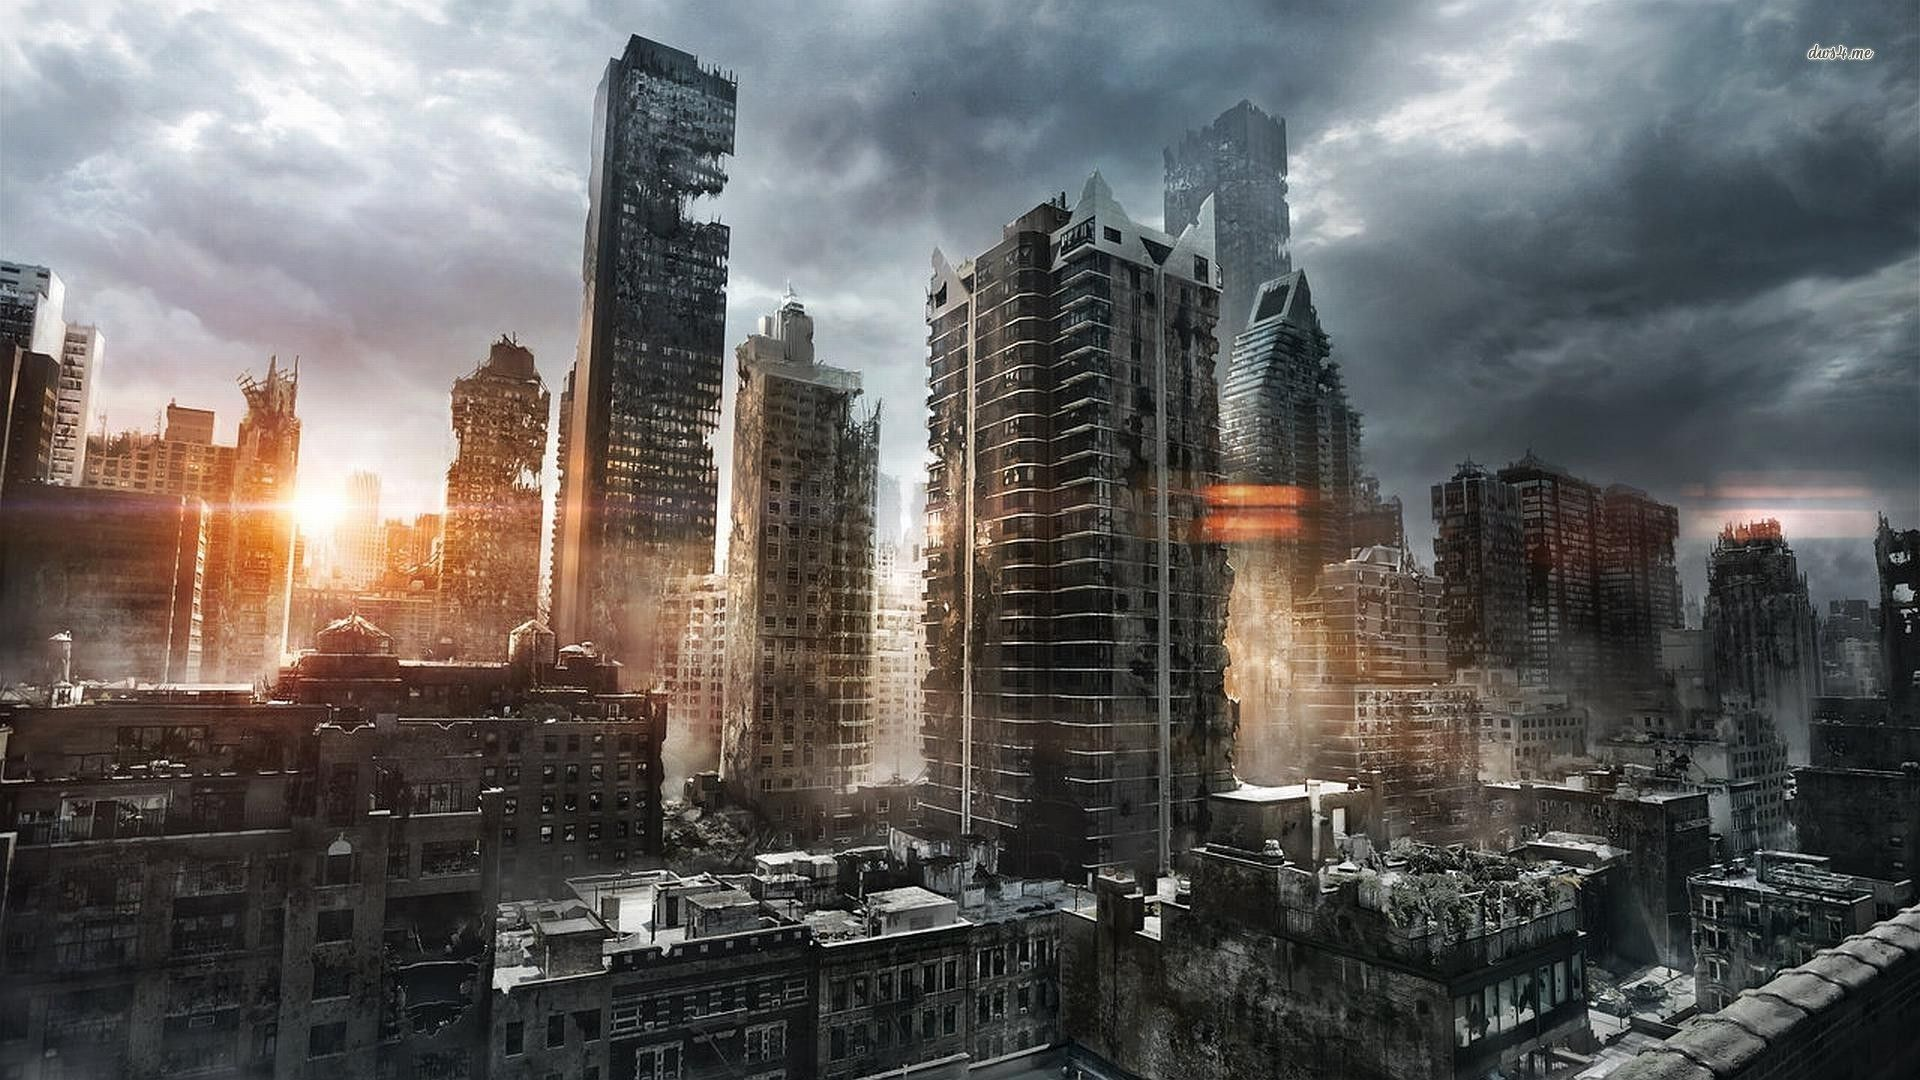 City In Ruins Hd Wallpaper Post Apocalyptic City Post Apocalyptic Art City Wallpaper